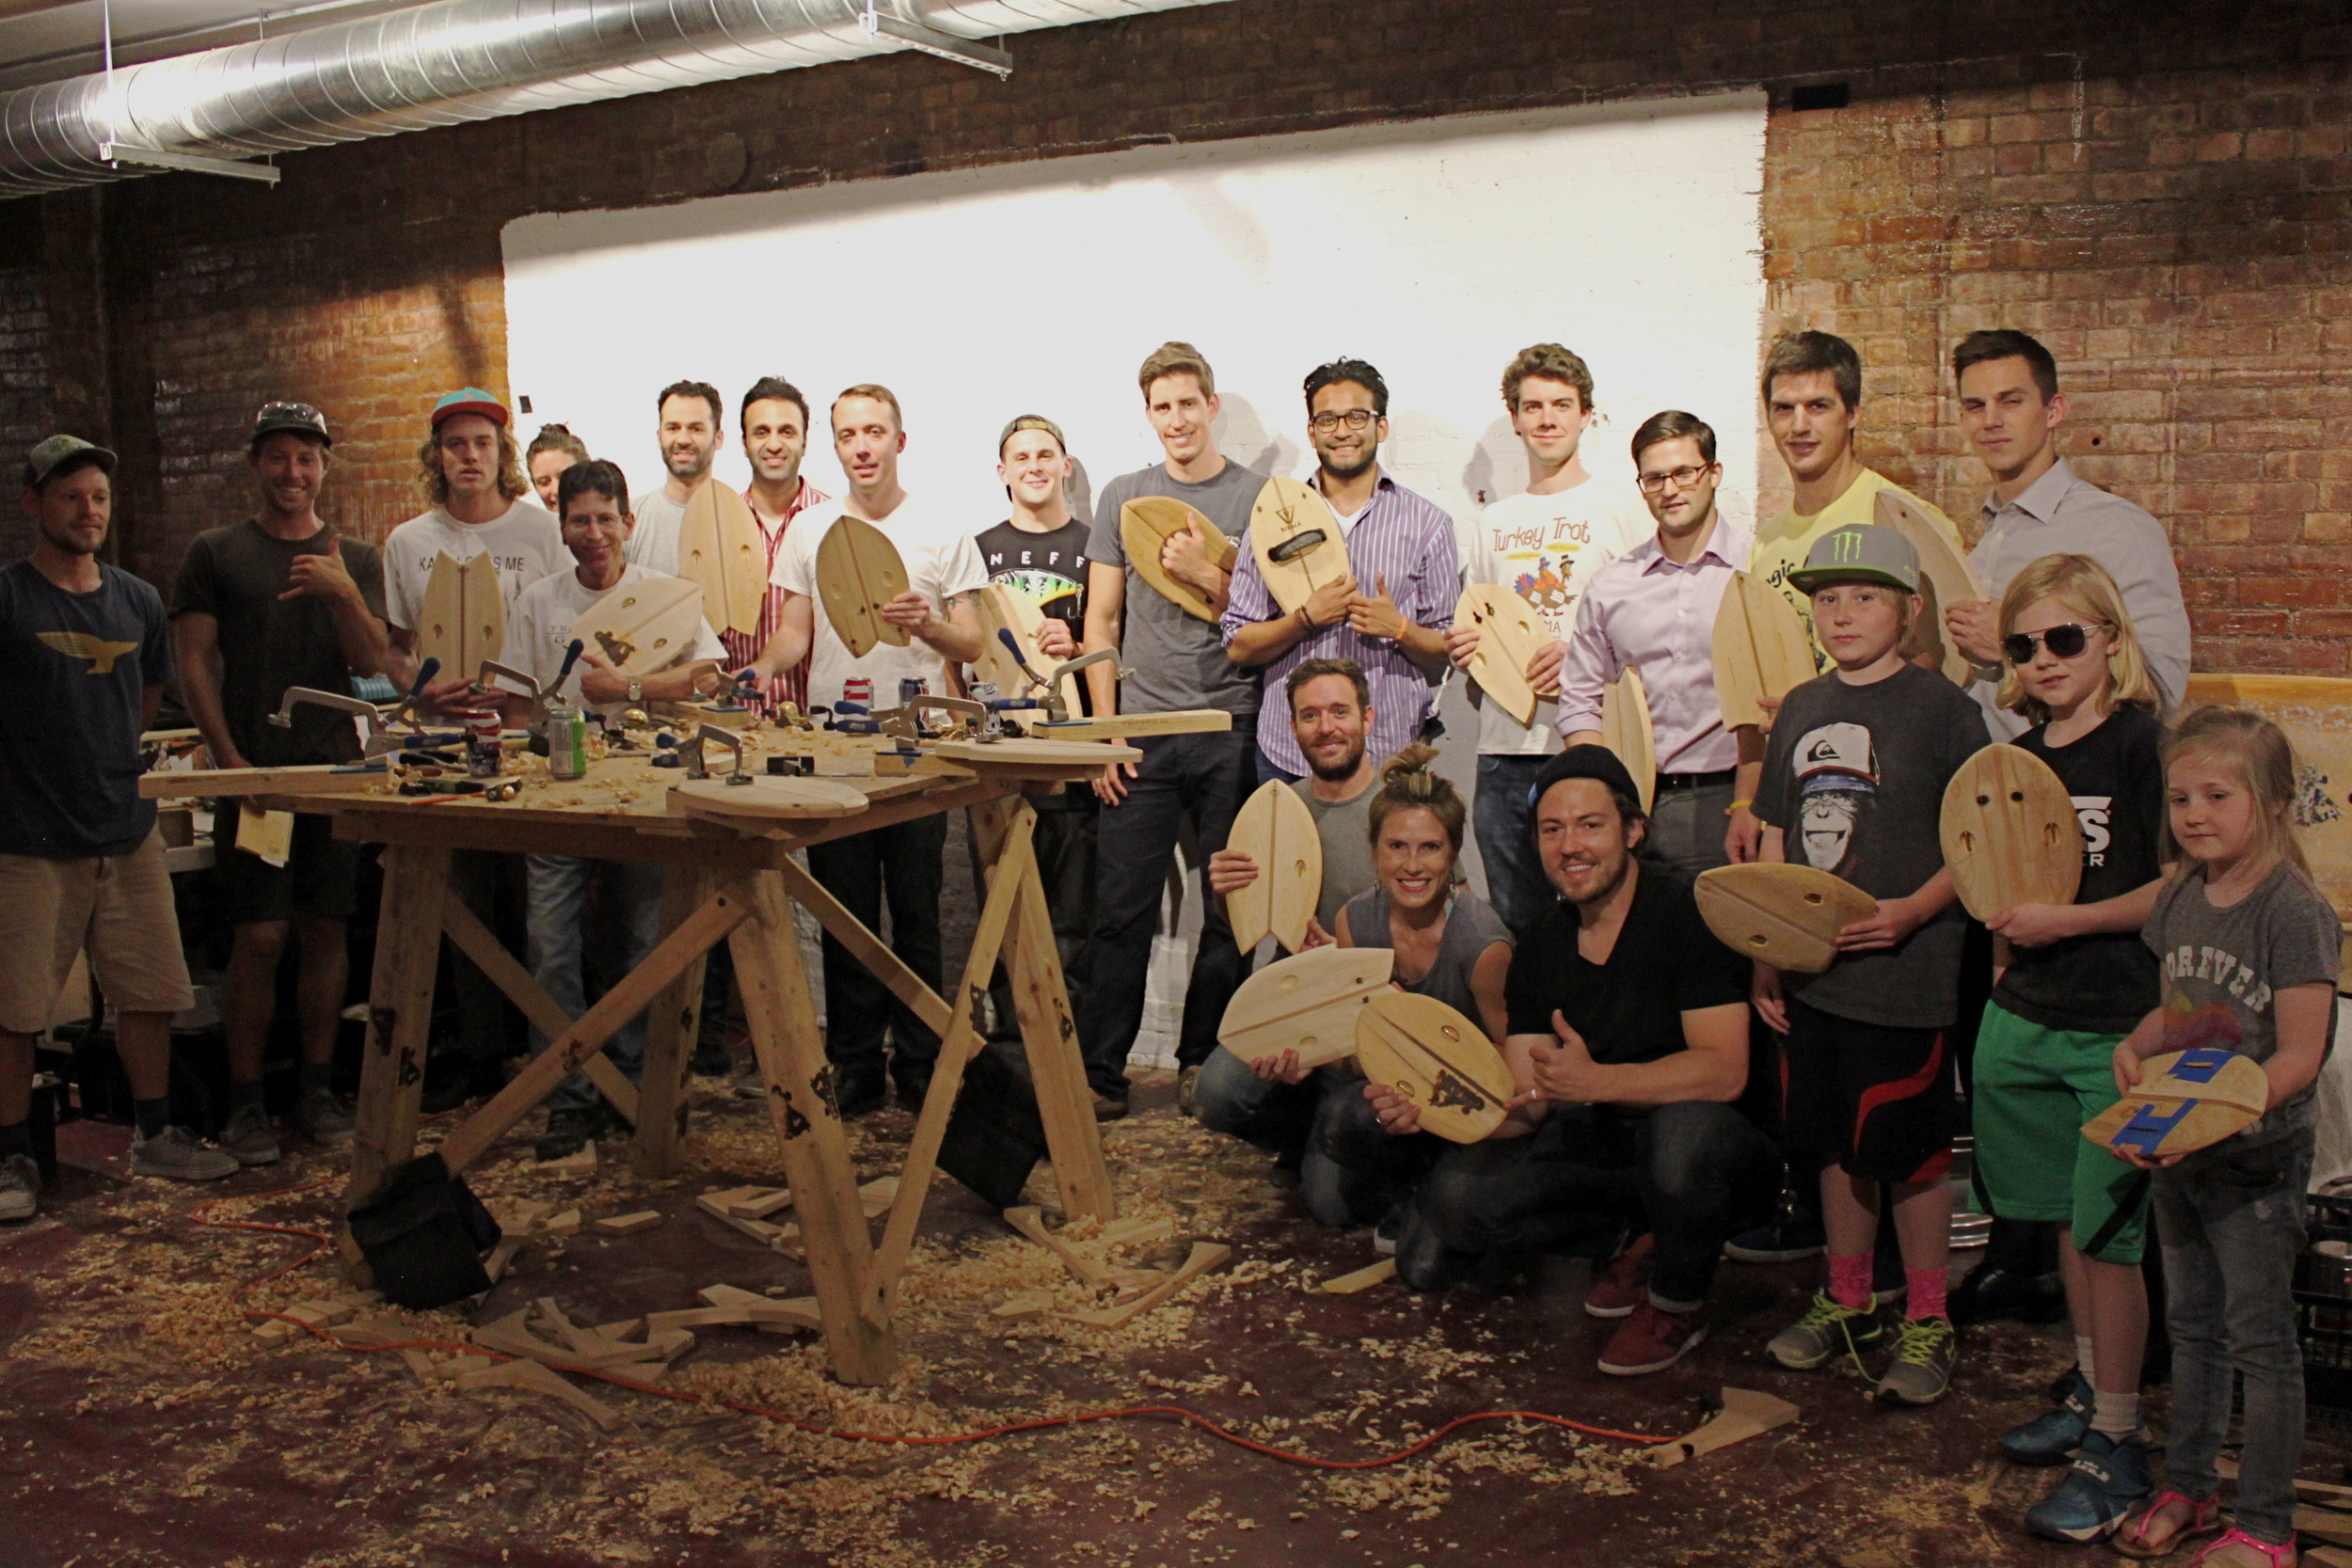 Incredible turnout for Grain Surfboard's handplane workshop at NYC's Patagonia Bowery.